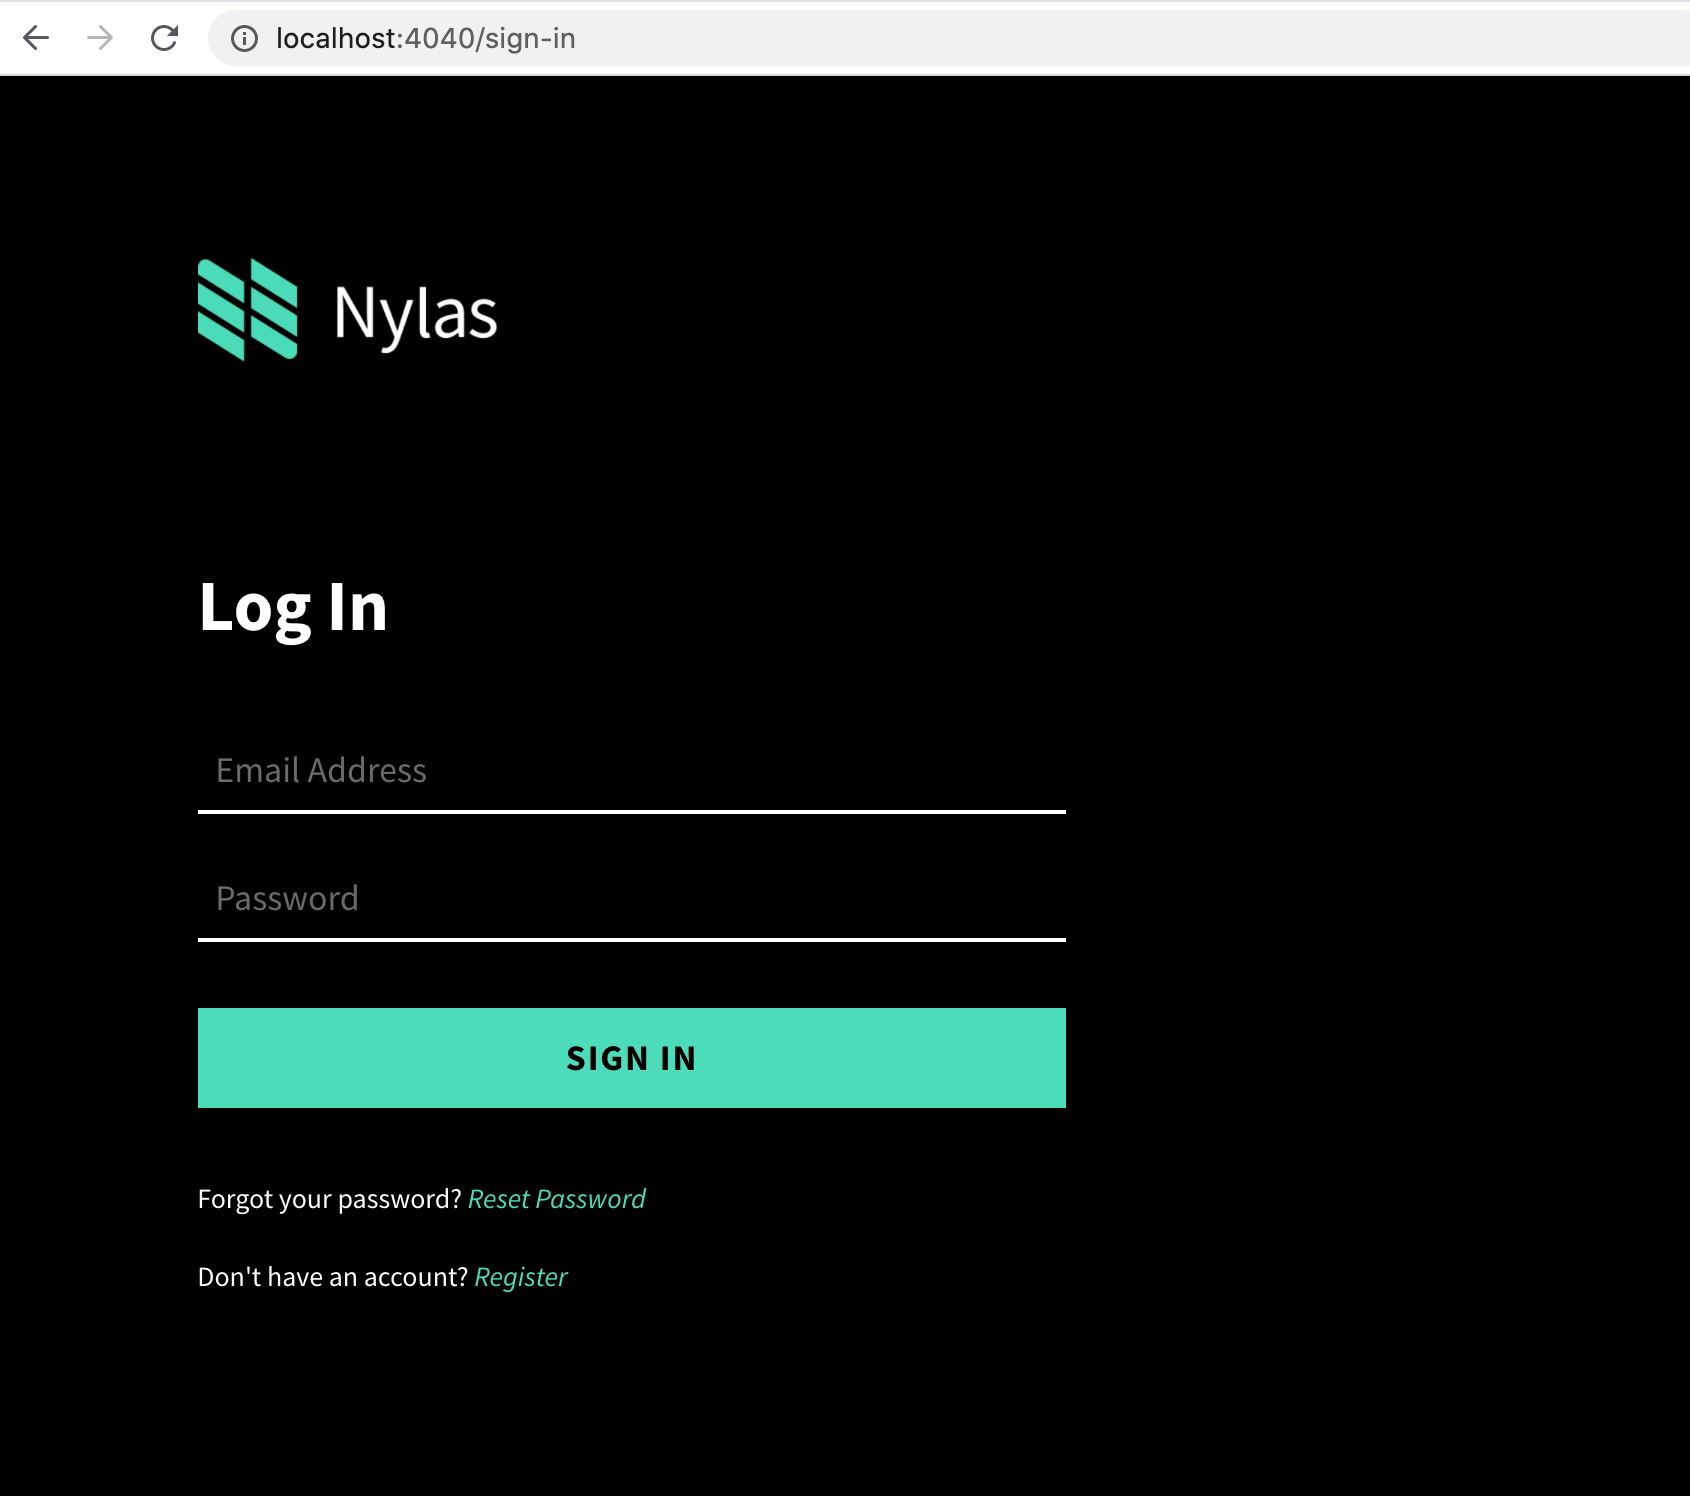 While we're port-forwarding, I'm able to access the Nylas Dashboard